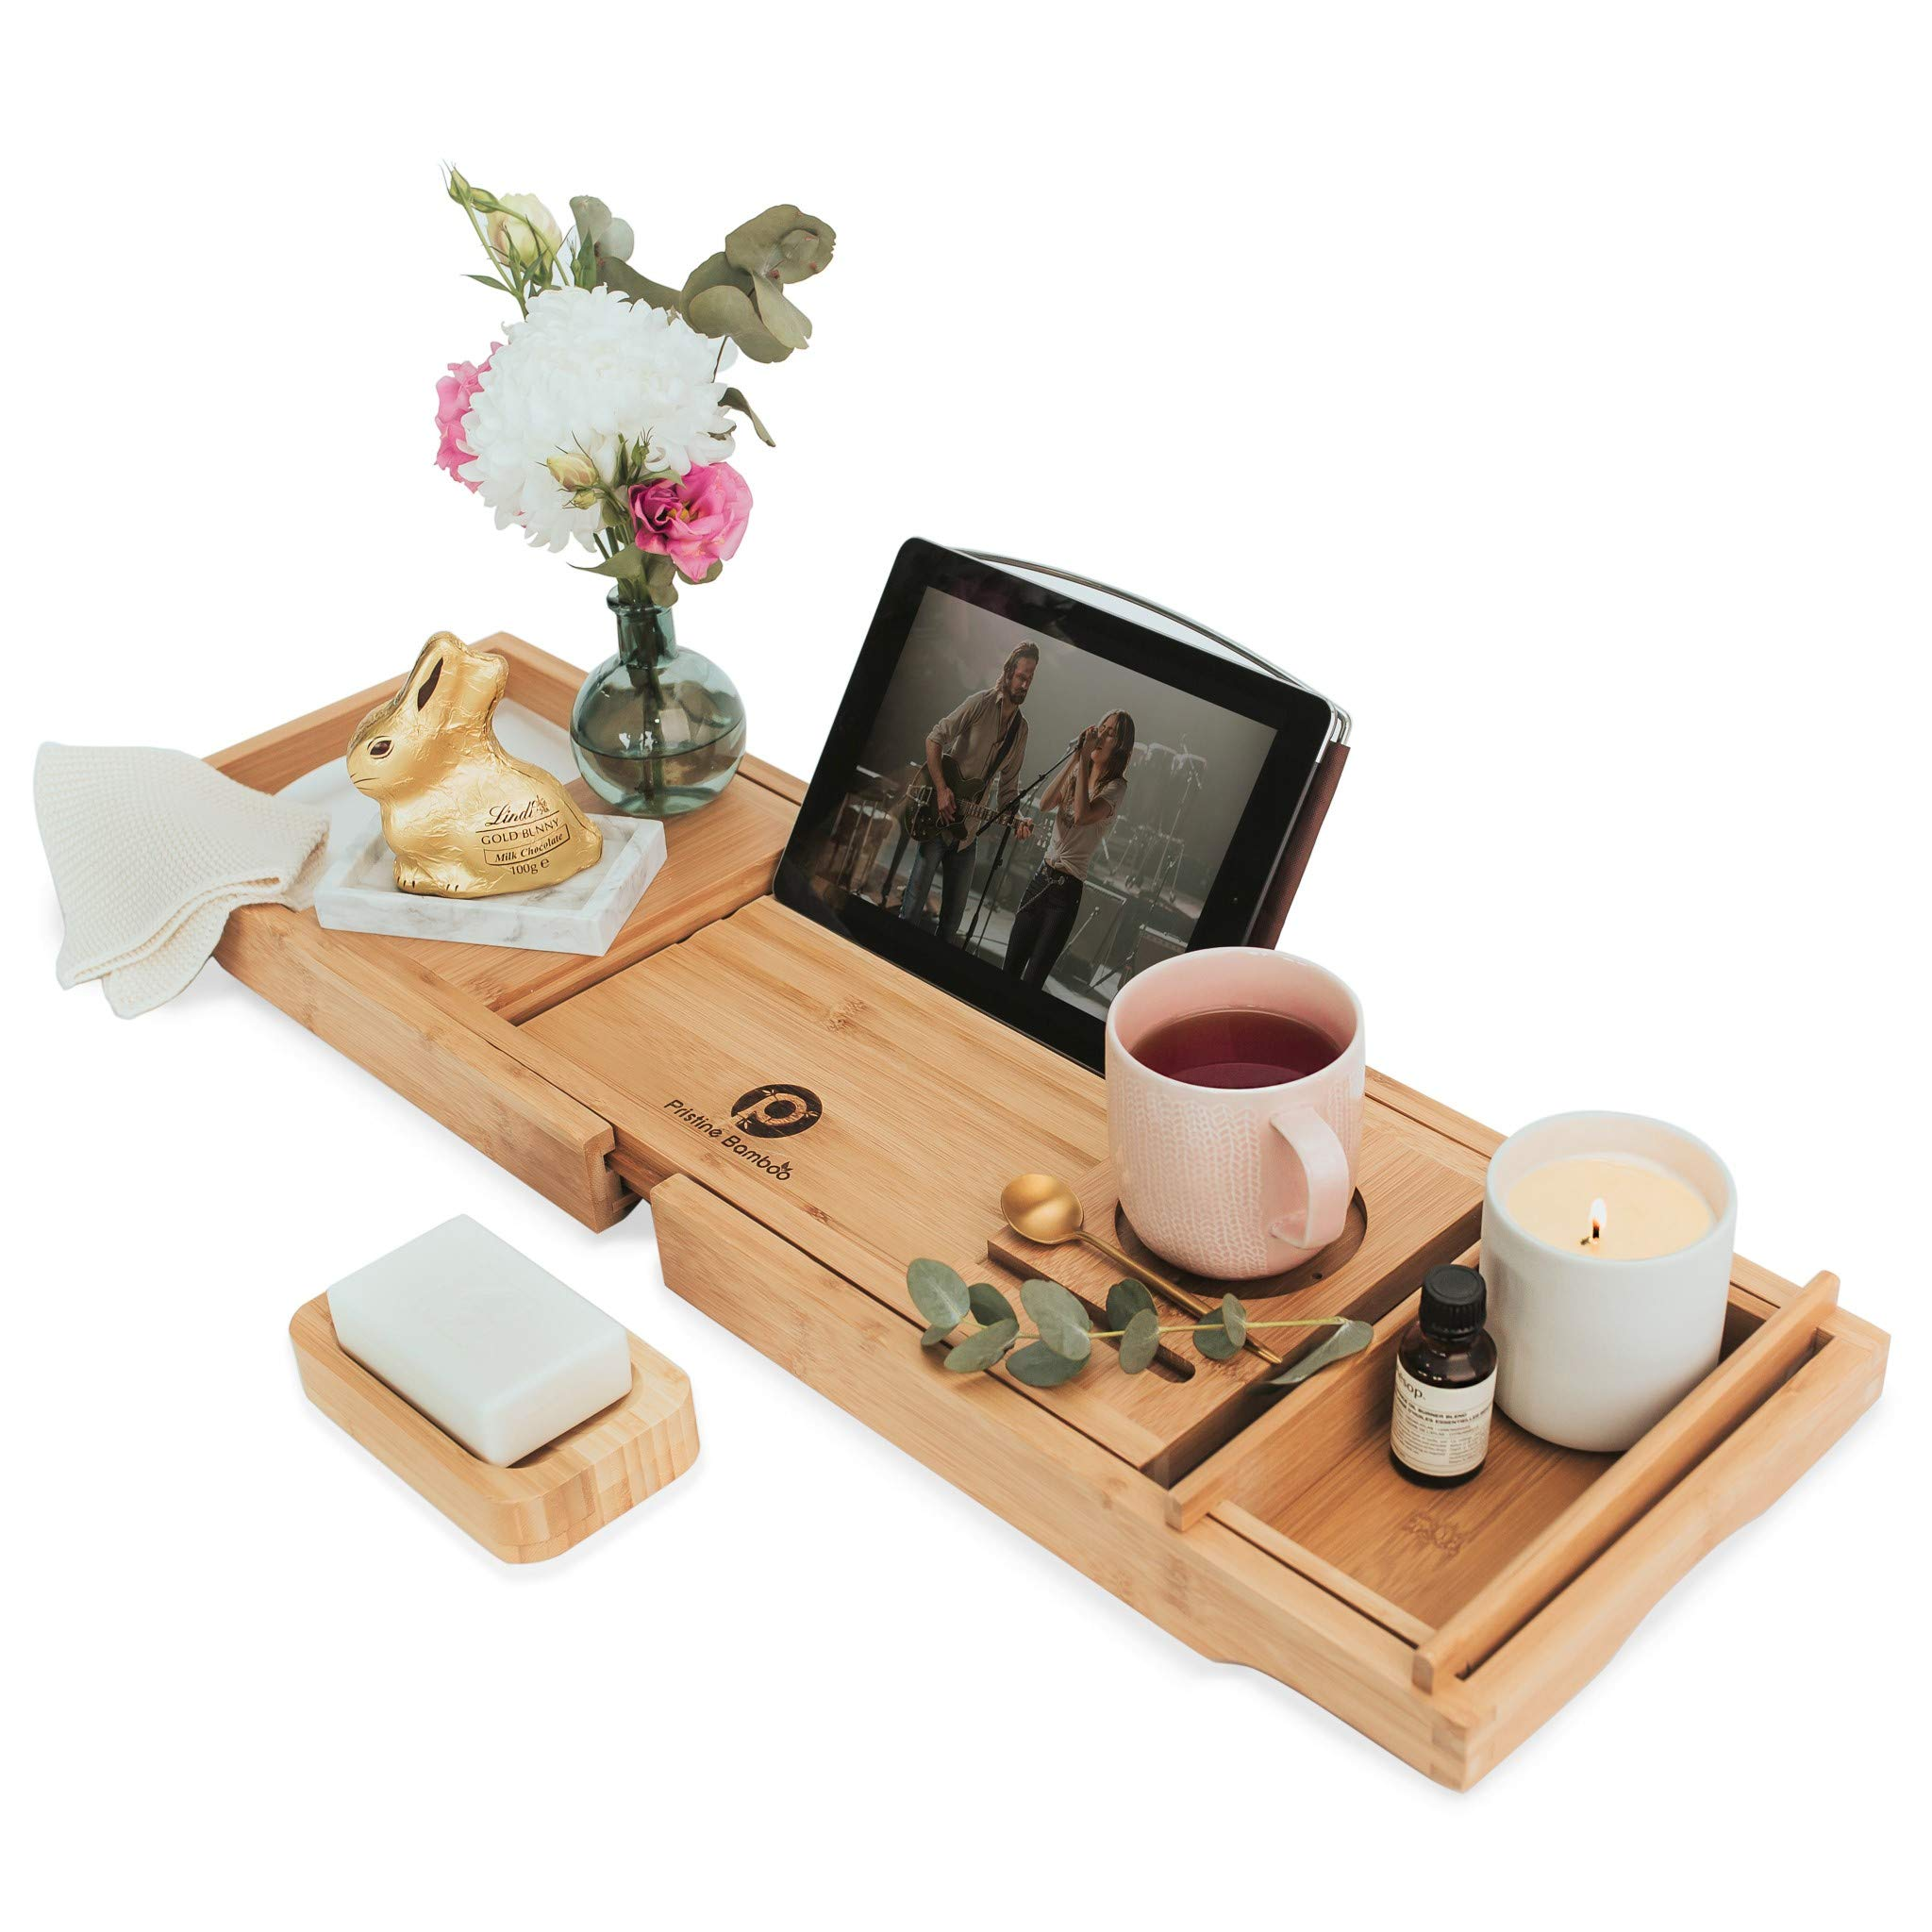 Premium Bamboo Bathtub Caddy Tray- Packed with 12 Features. Expandable Bathtubs Tray with Wine Glass Holder, Book Shelf. Bathtub Shelves. Bed and Table Tray. Over the Tub Organizer.